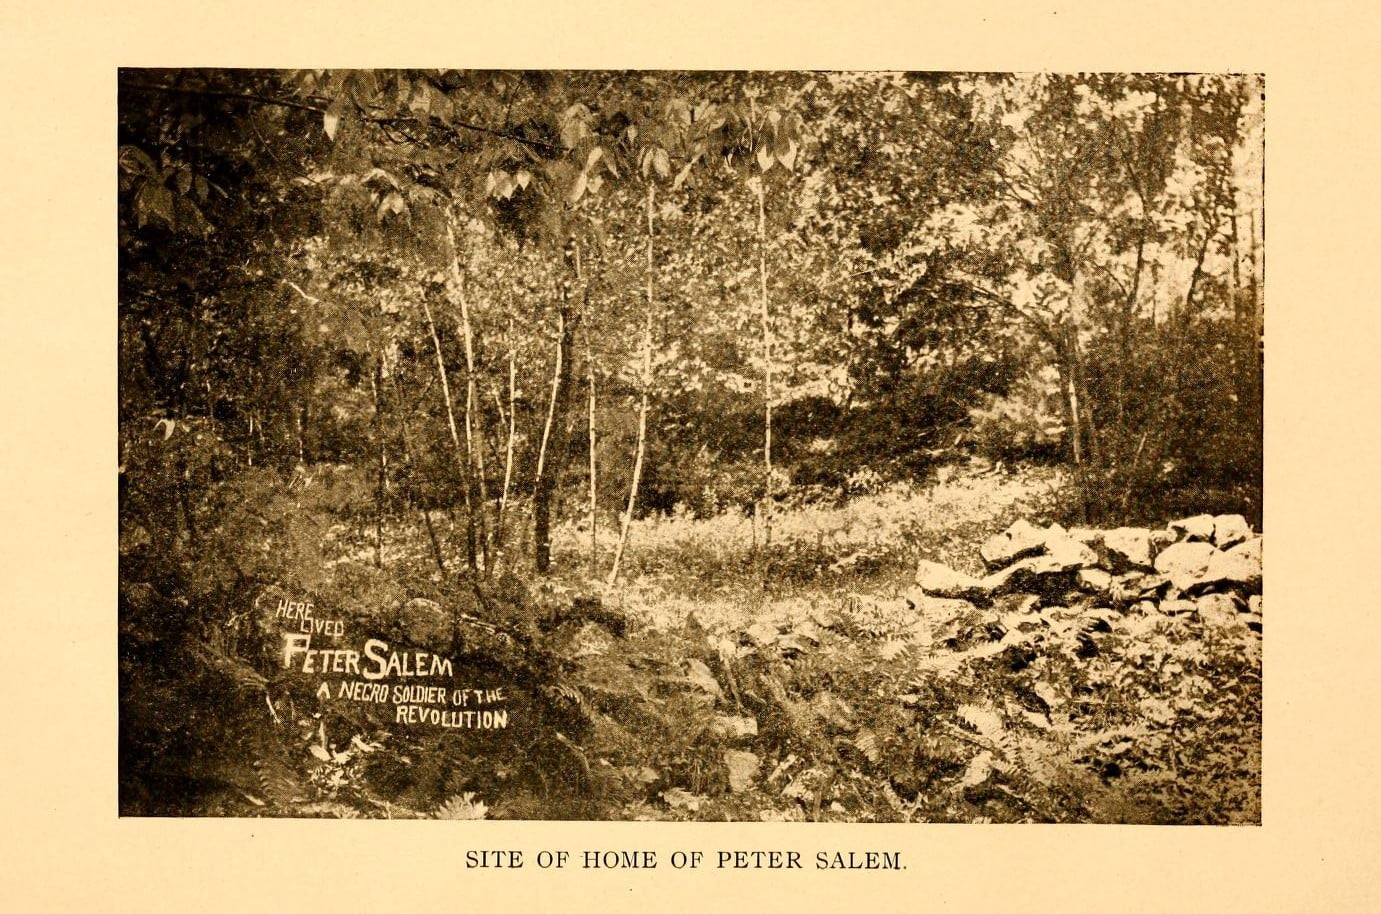 Site of Home of Peter Salem